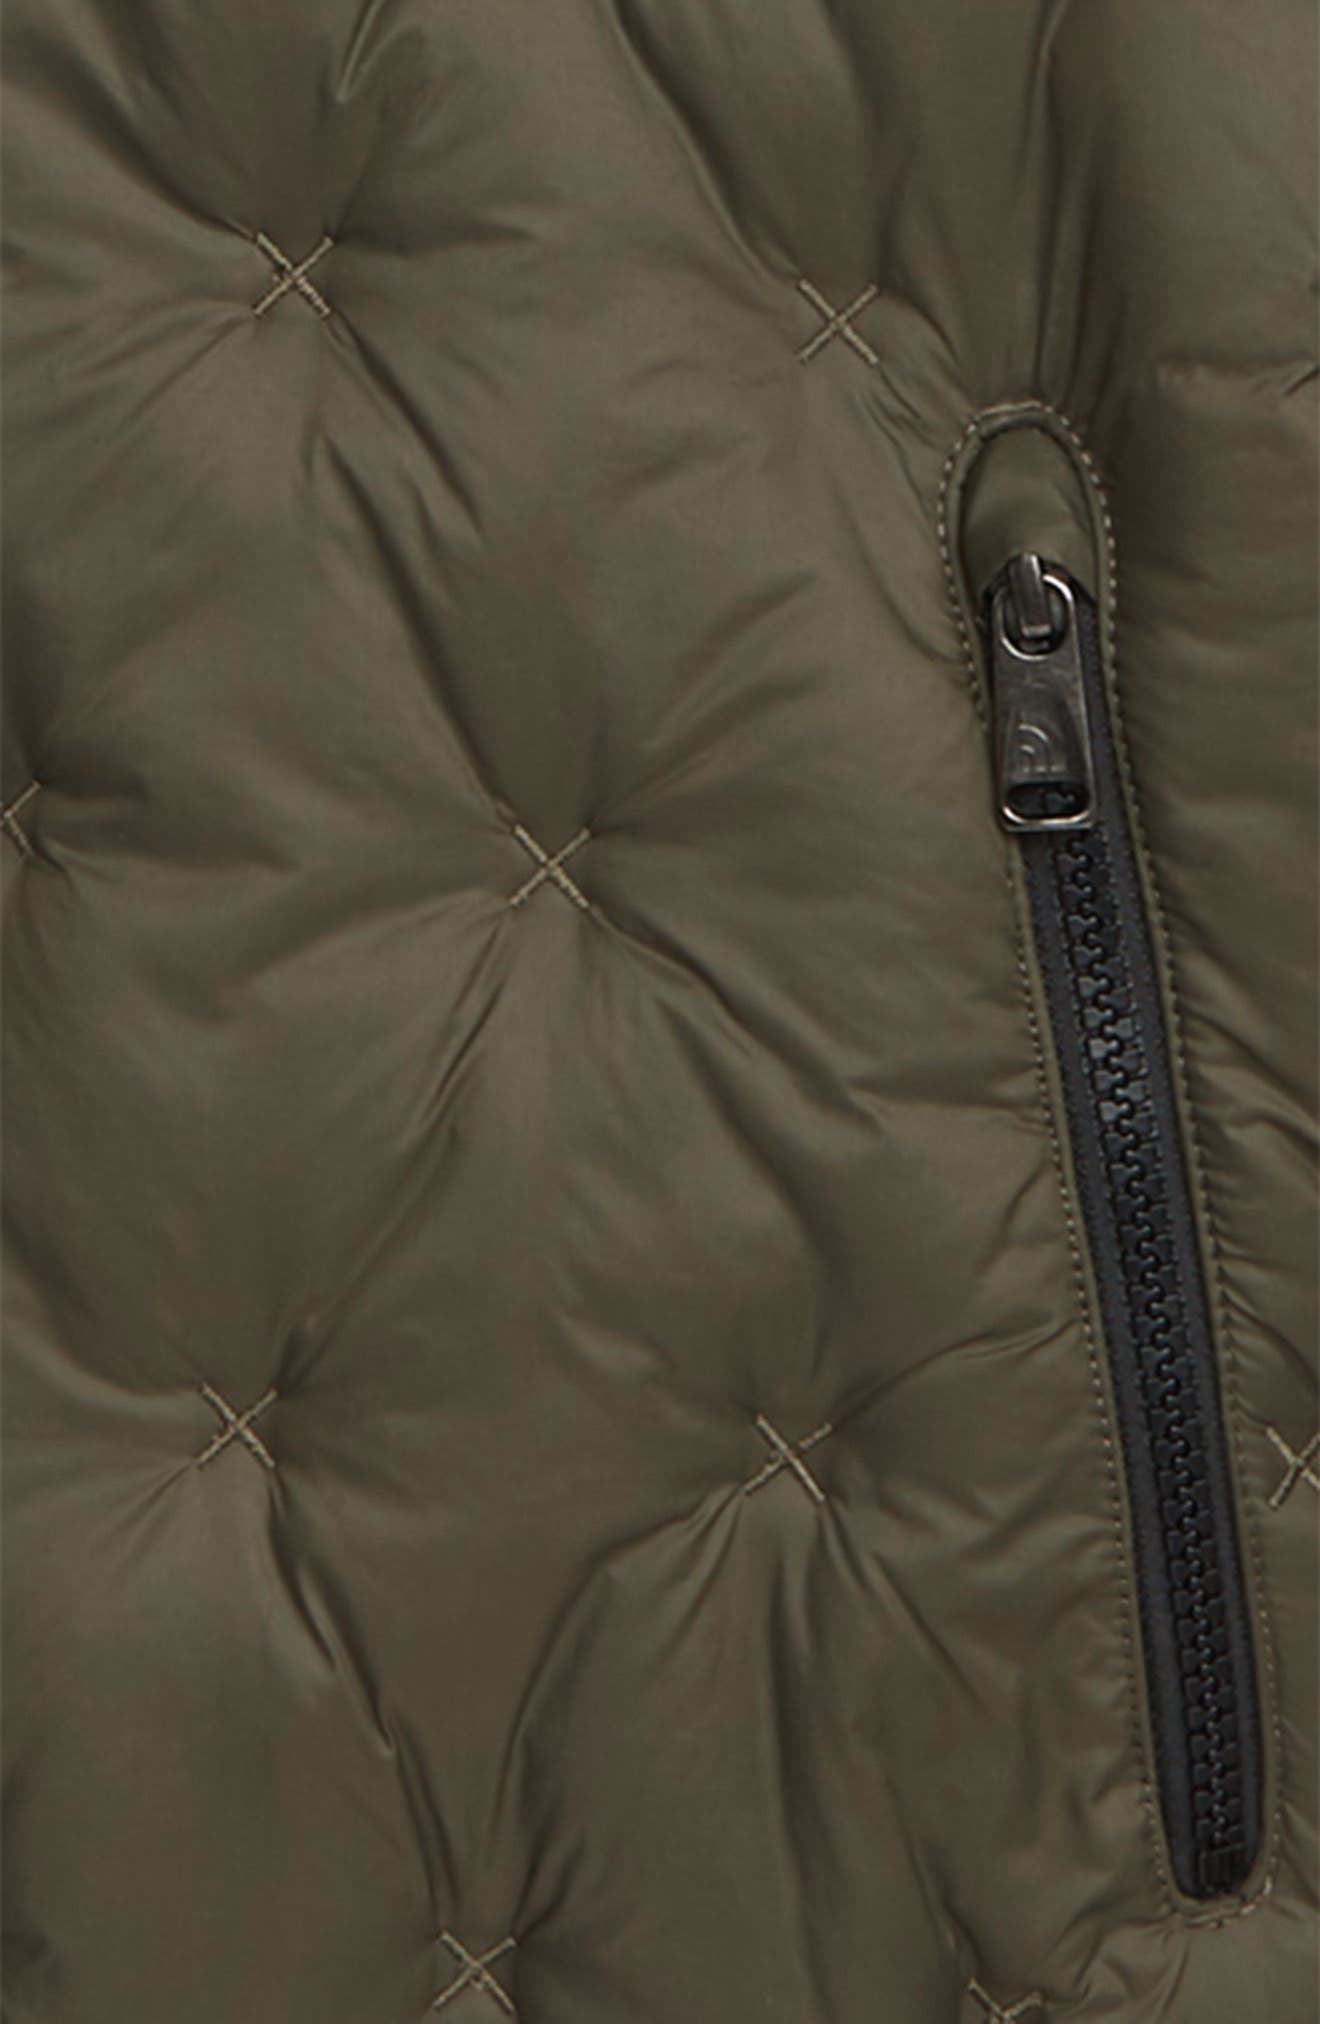 Moondoggy 2.0 Water Repellent Down Jacket,                             Alternate thumbnail 2, color,                             NEW TAUPE GREEN